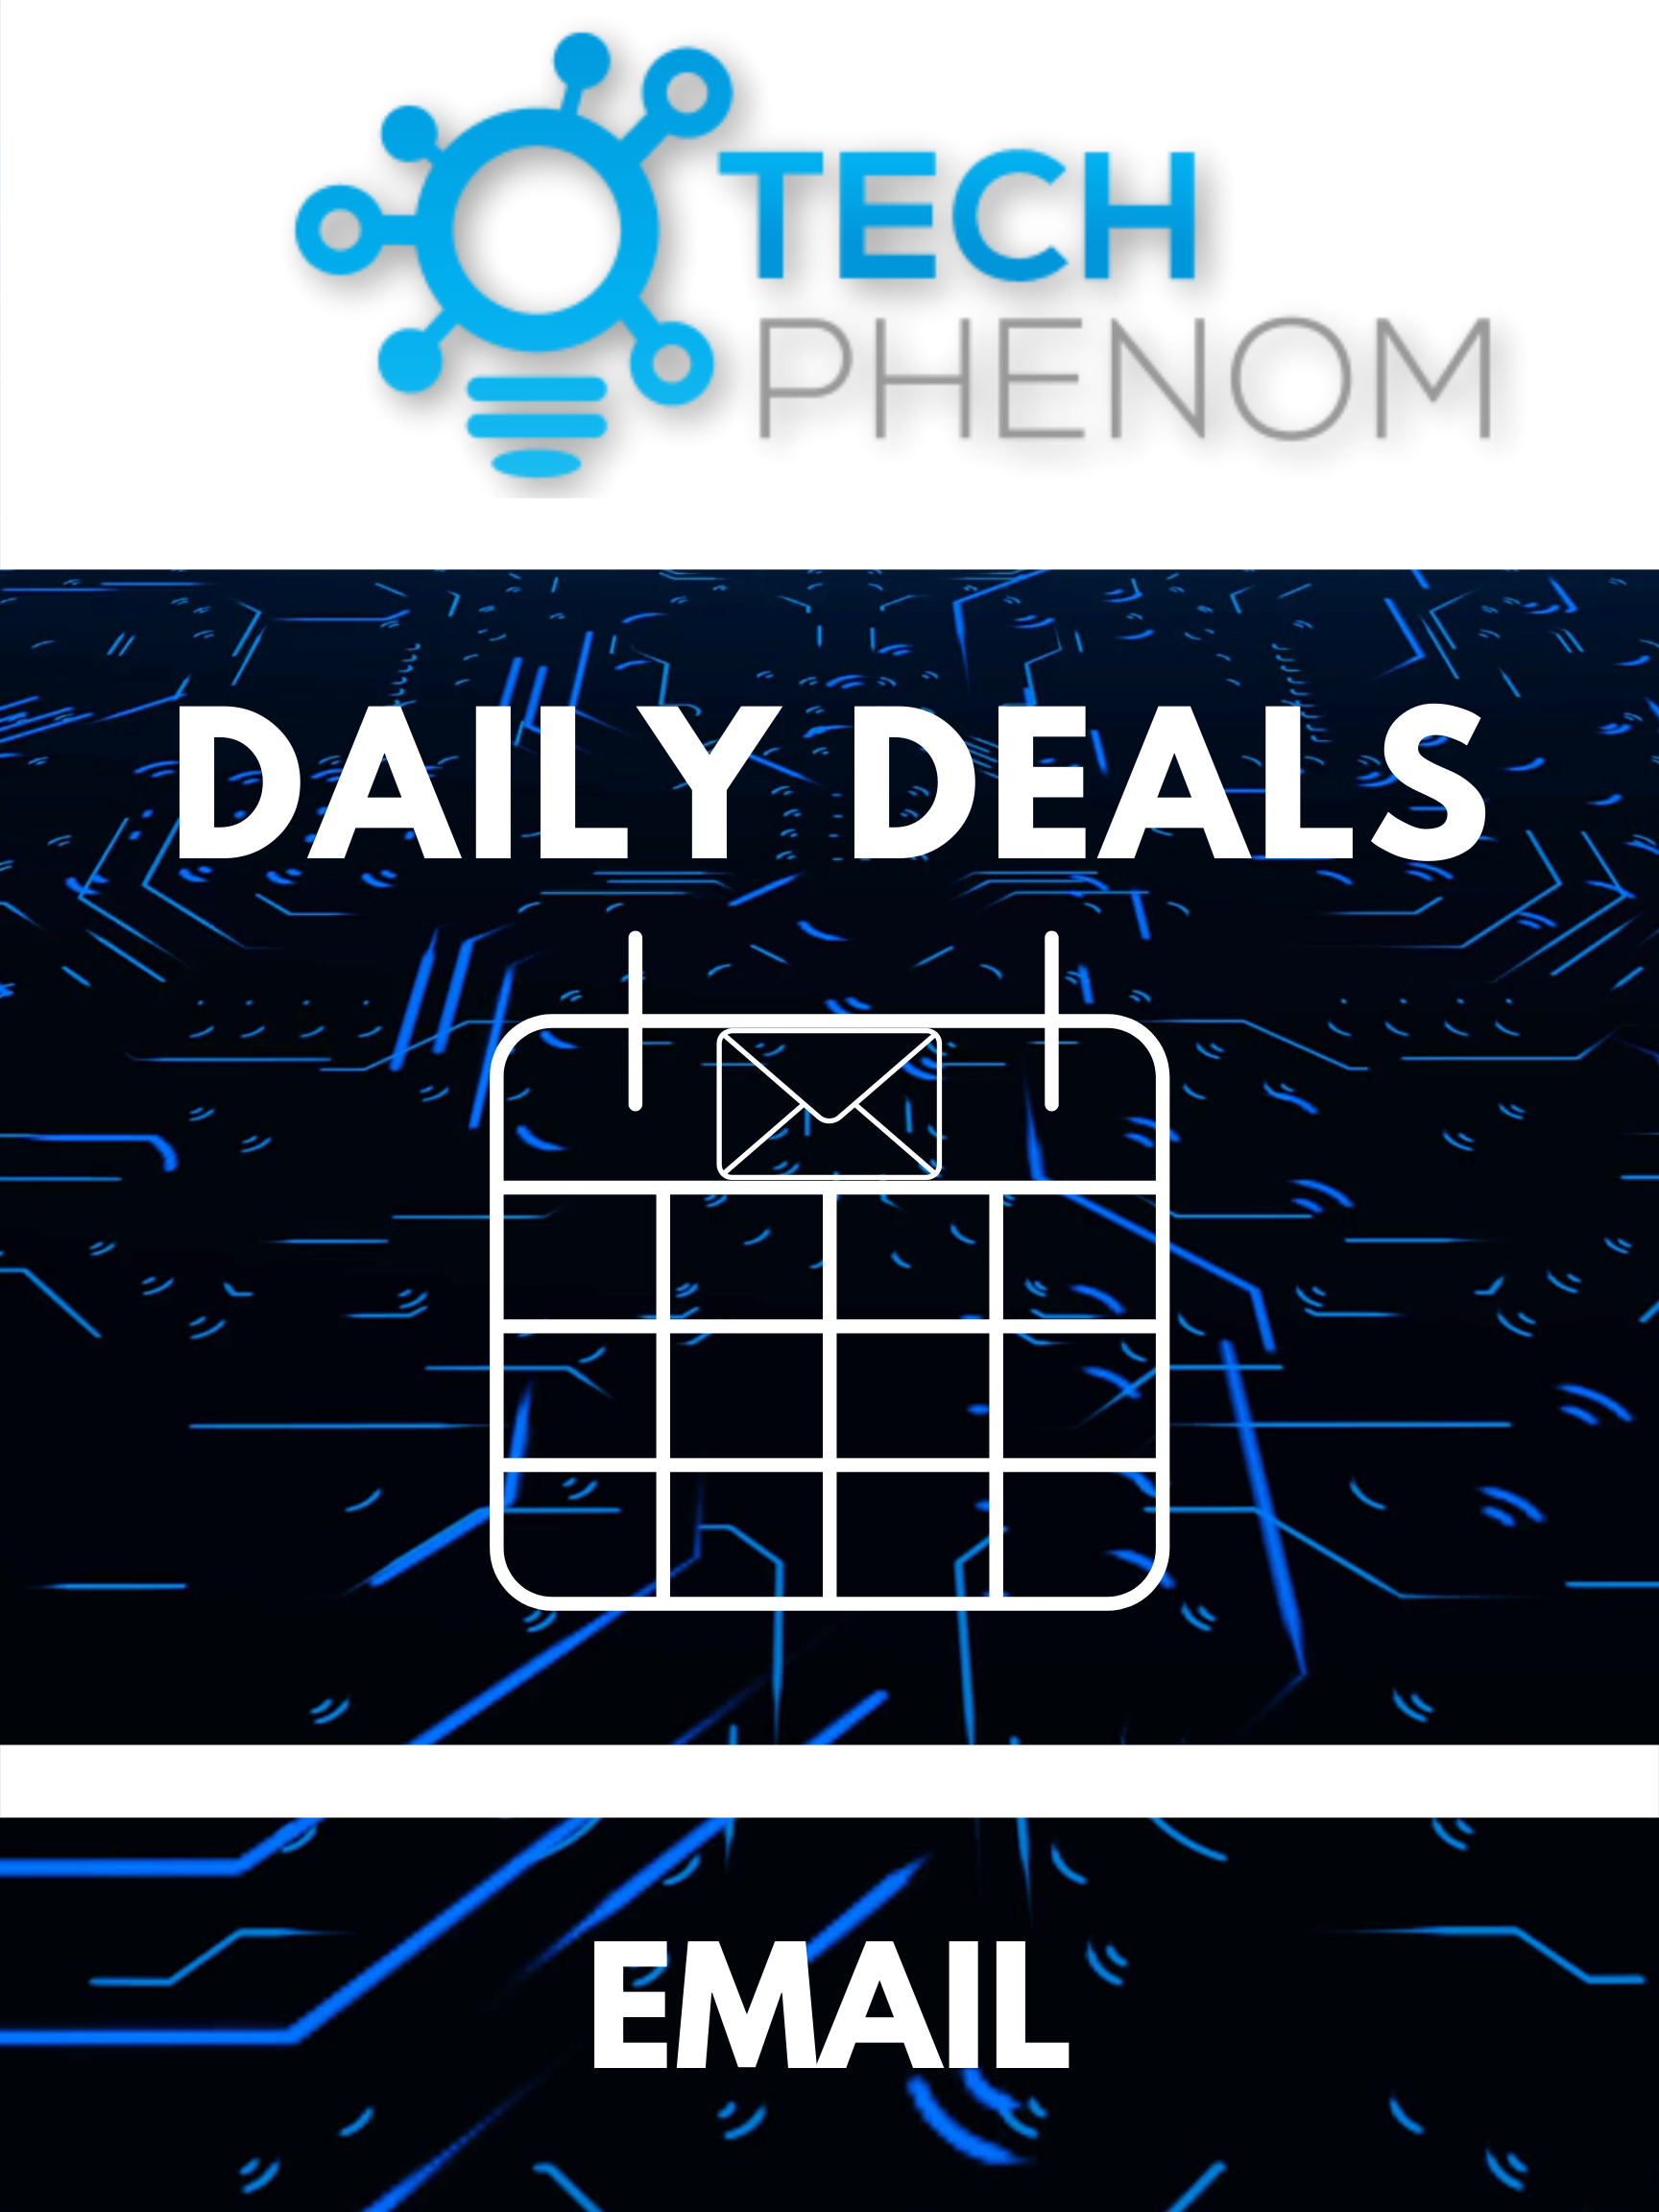 Tech Phenomenon Daily Deal